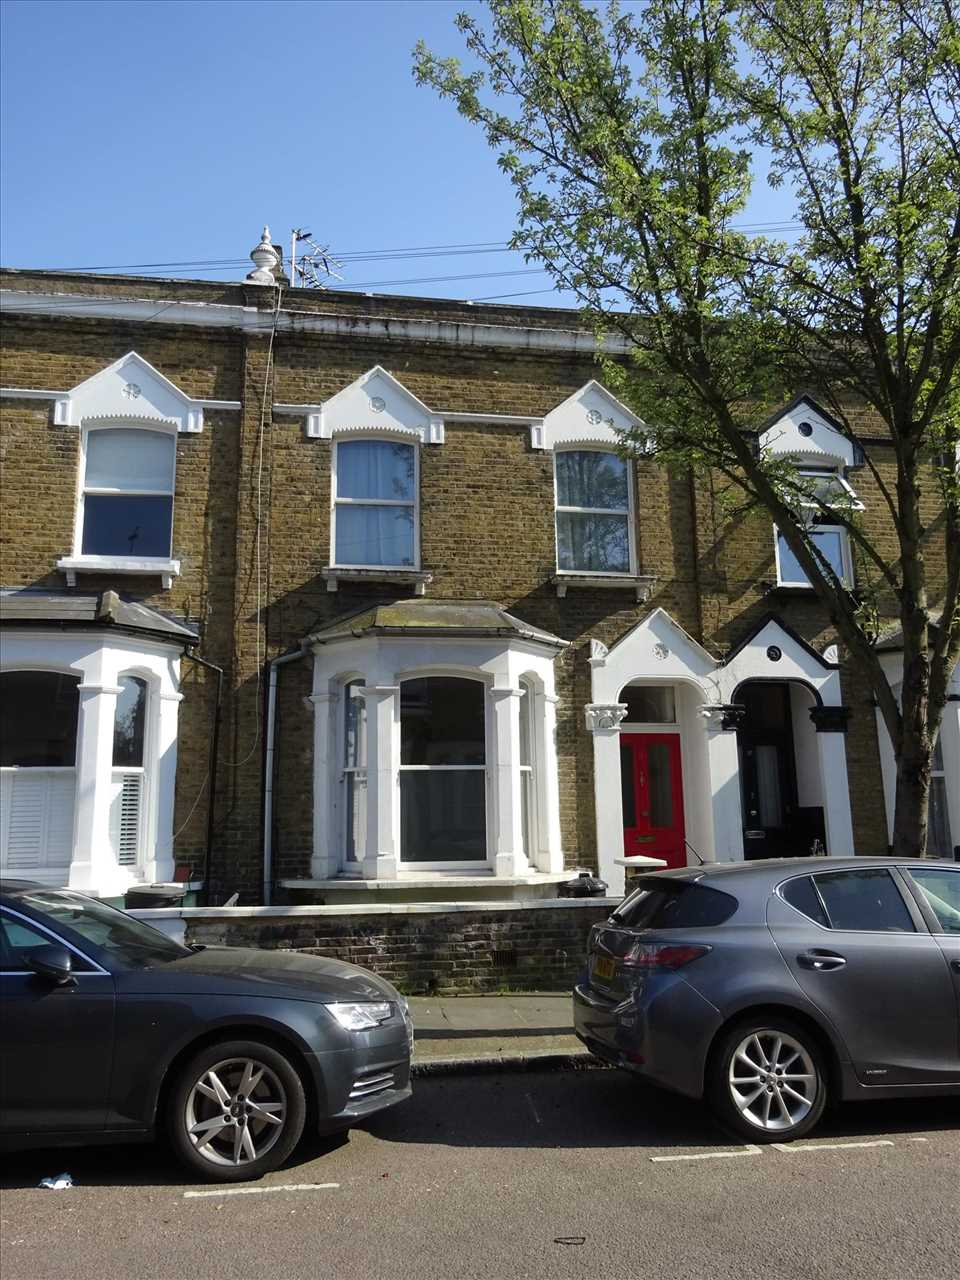 4 bed house to rent in Wedmore Gardens, London, N19